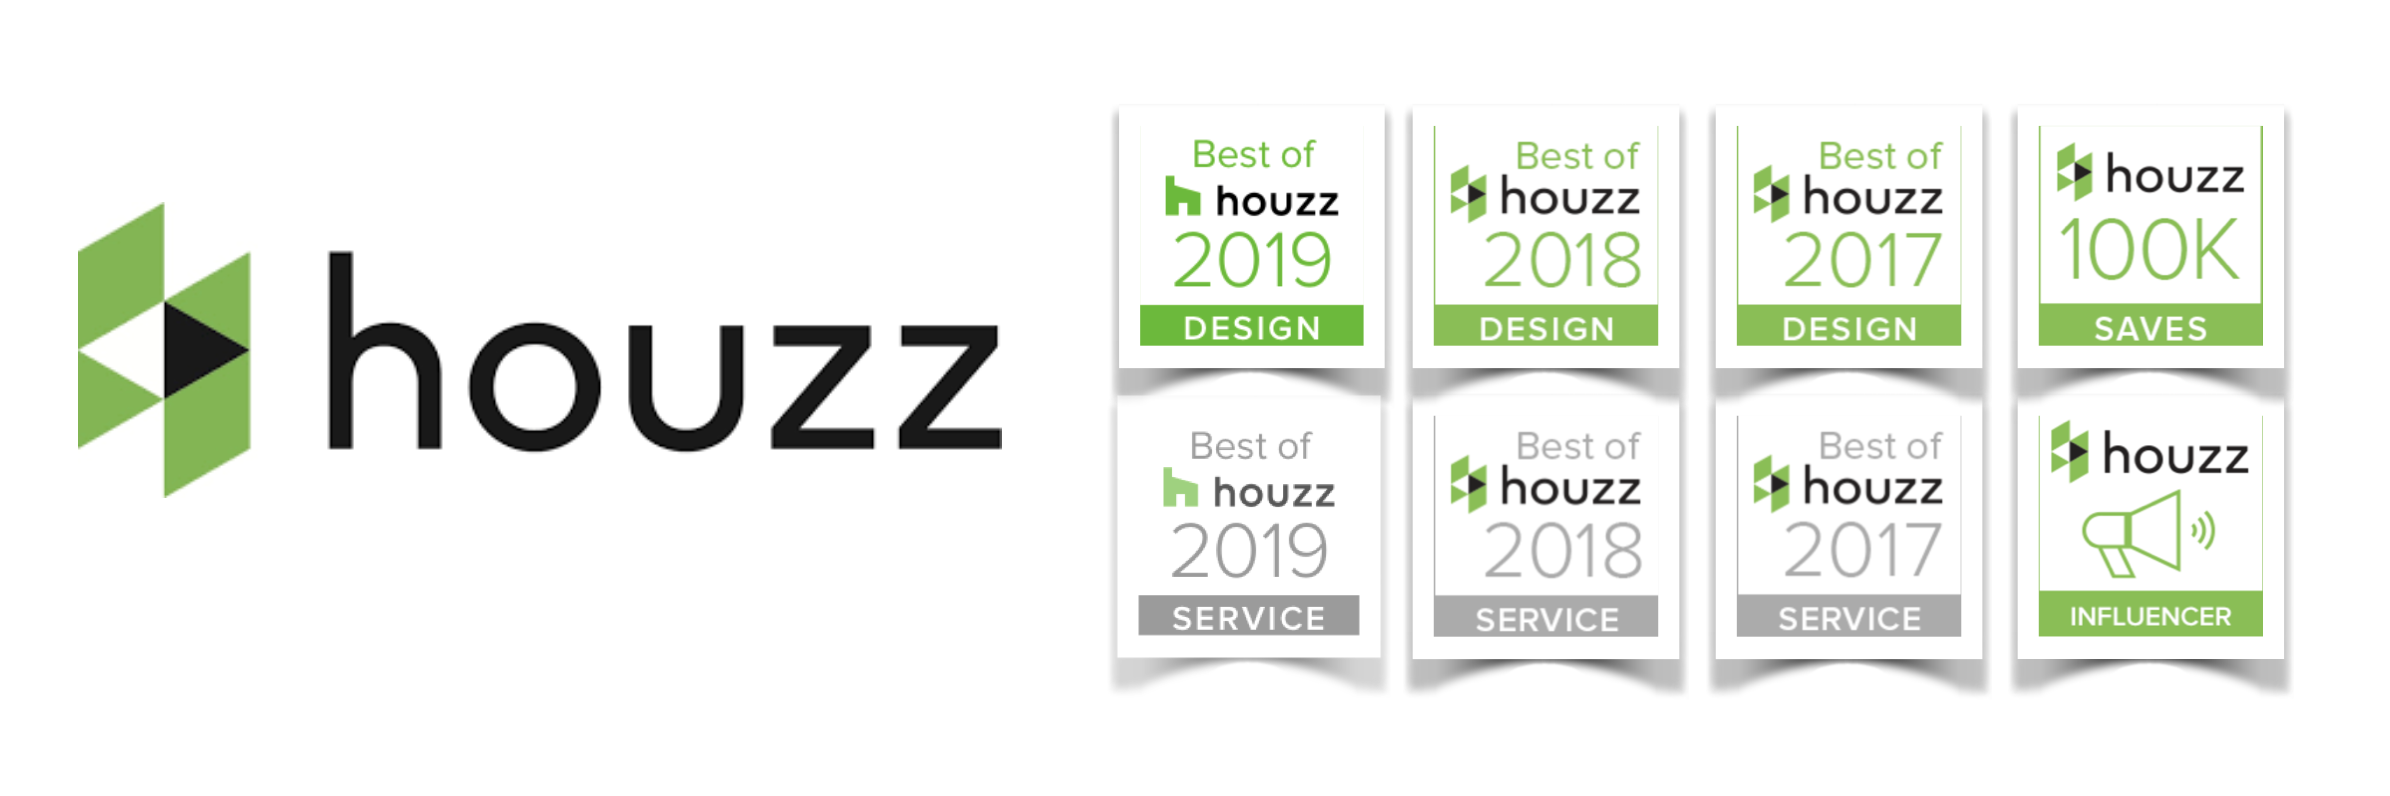 Gabriele and her team have been recognized and awarded houzz badges consistently over the years for her excellence in both service and design. At Houzz's 5th anniversary event hosted in Toronto, Pizzale Design Inc. received the top award for 'PowerHouzzer 2015'. This is awarded regionally to candidates who have overall comprehensive and influential design on the Houzz community.